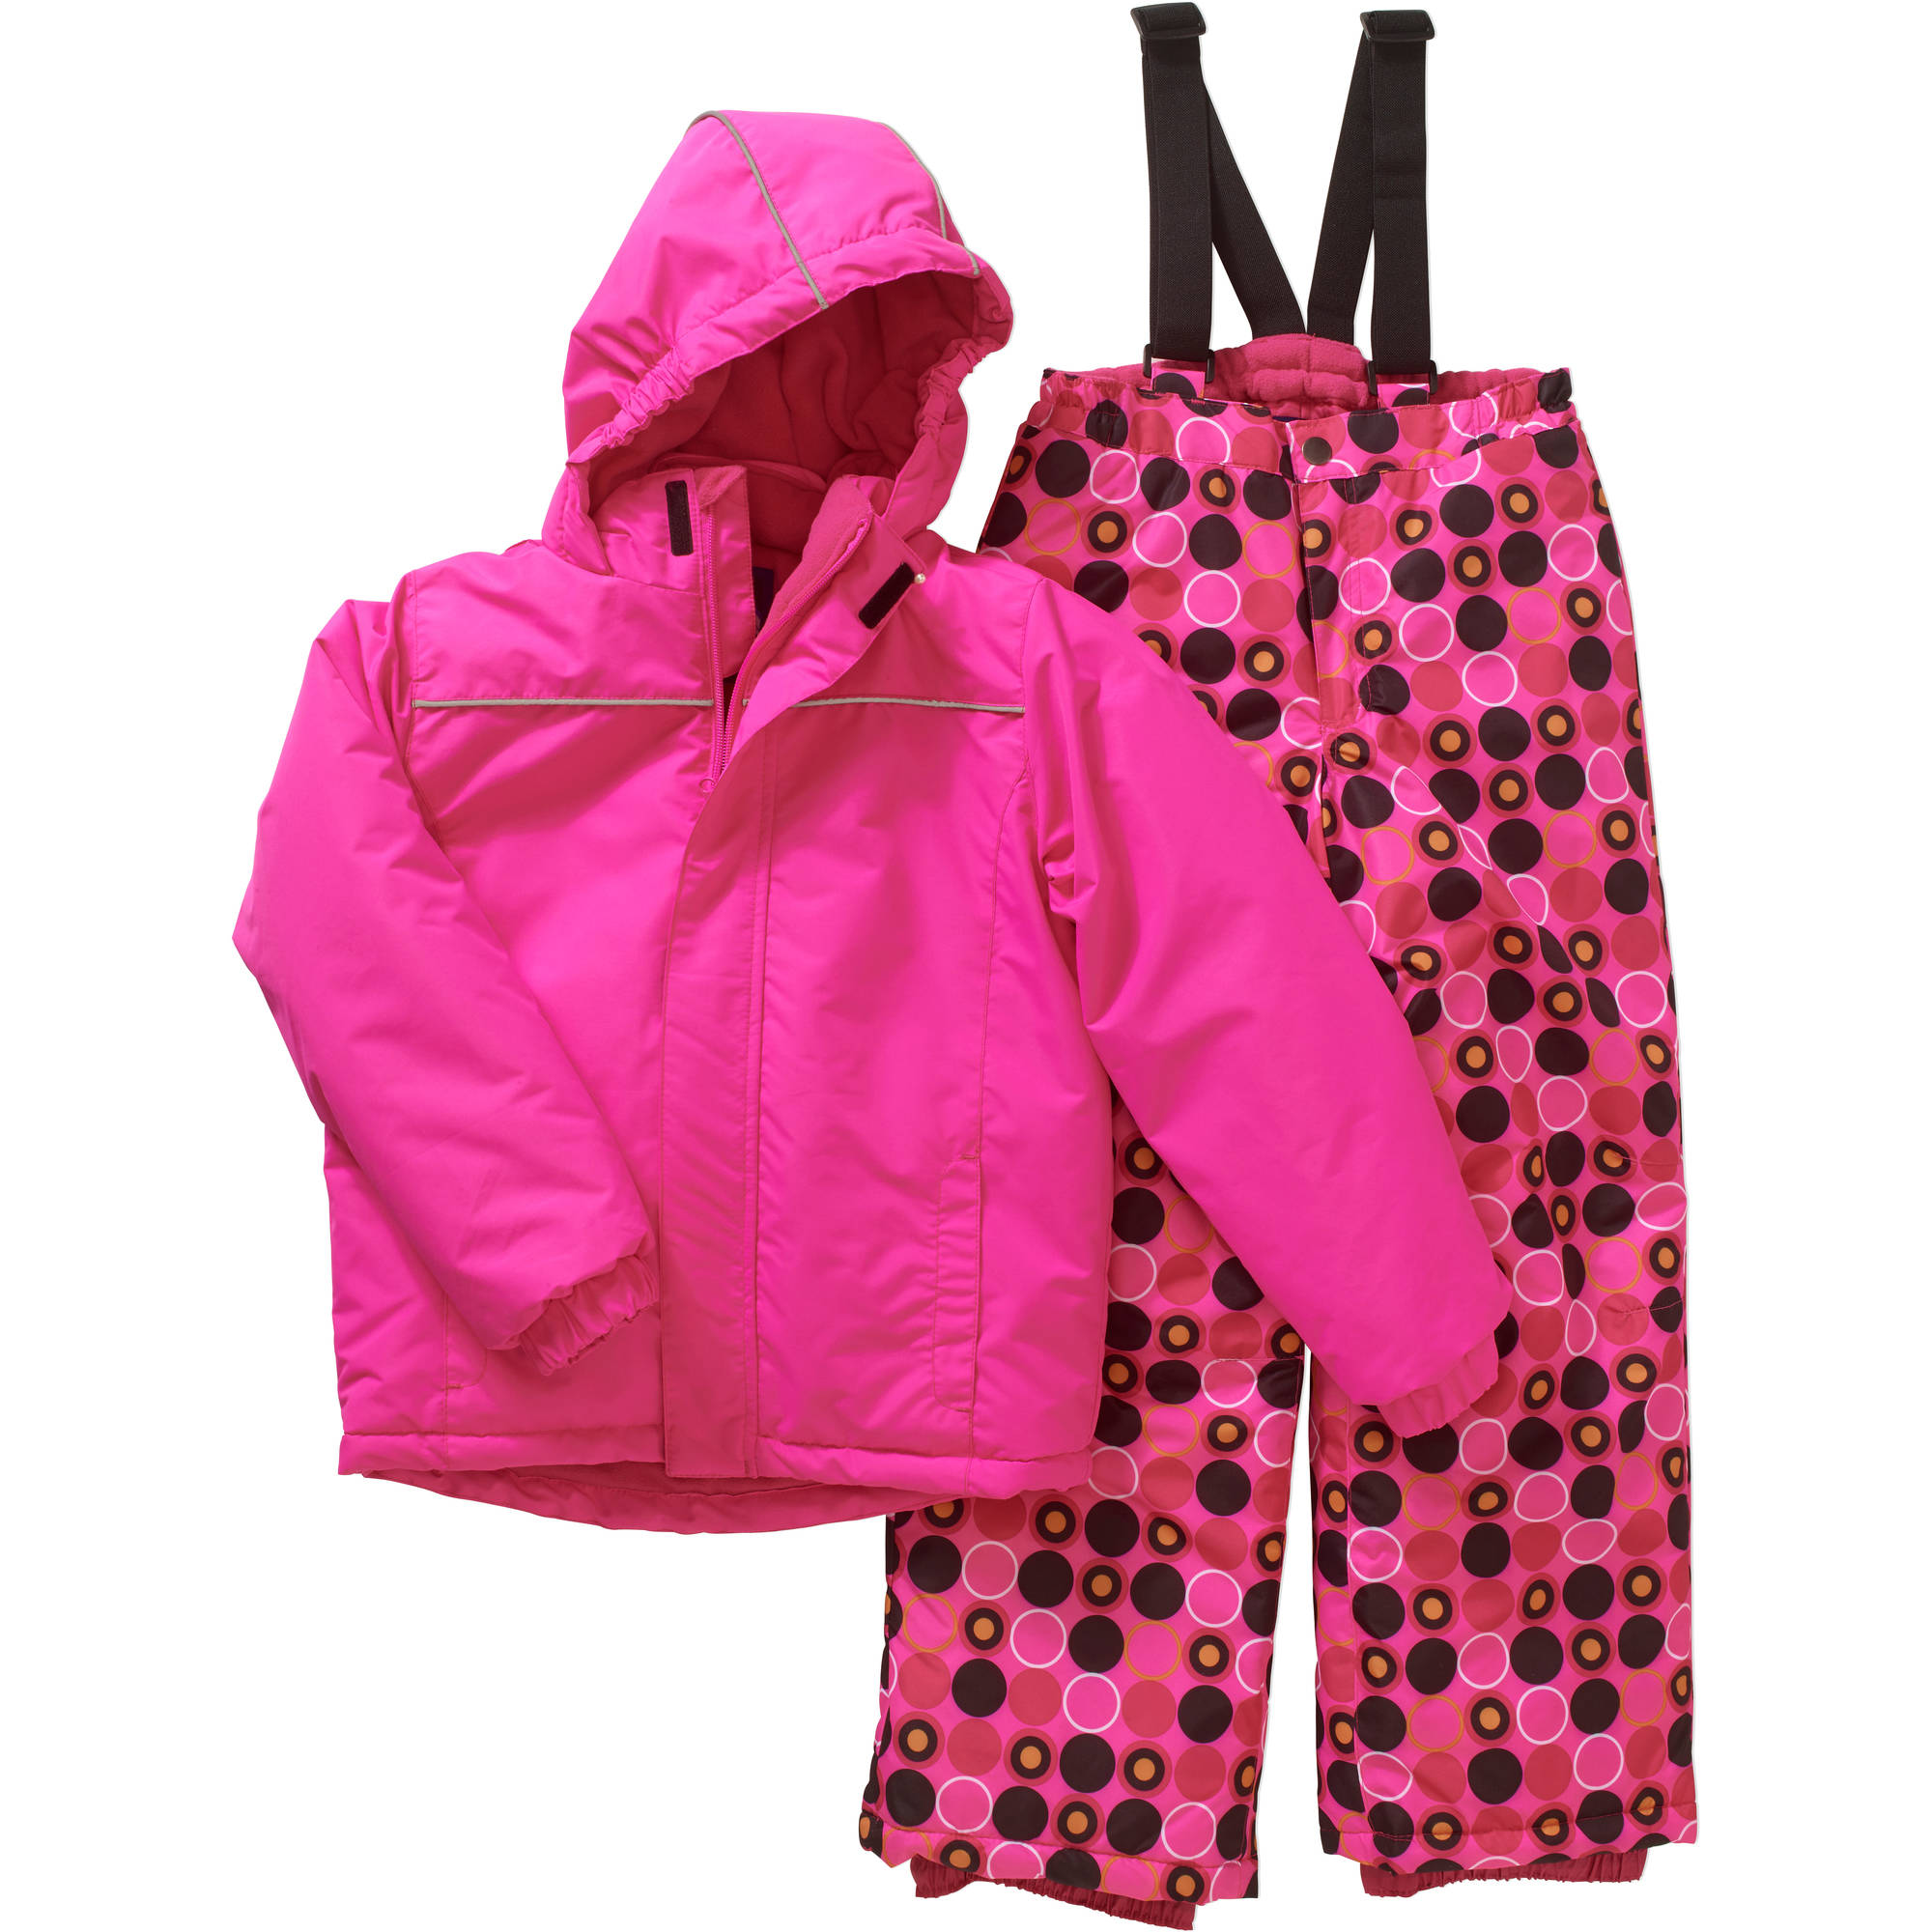 Iceburg Girls' Insulated Snow Day Jacket and Bib Suit Set